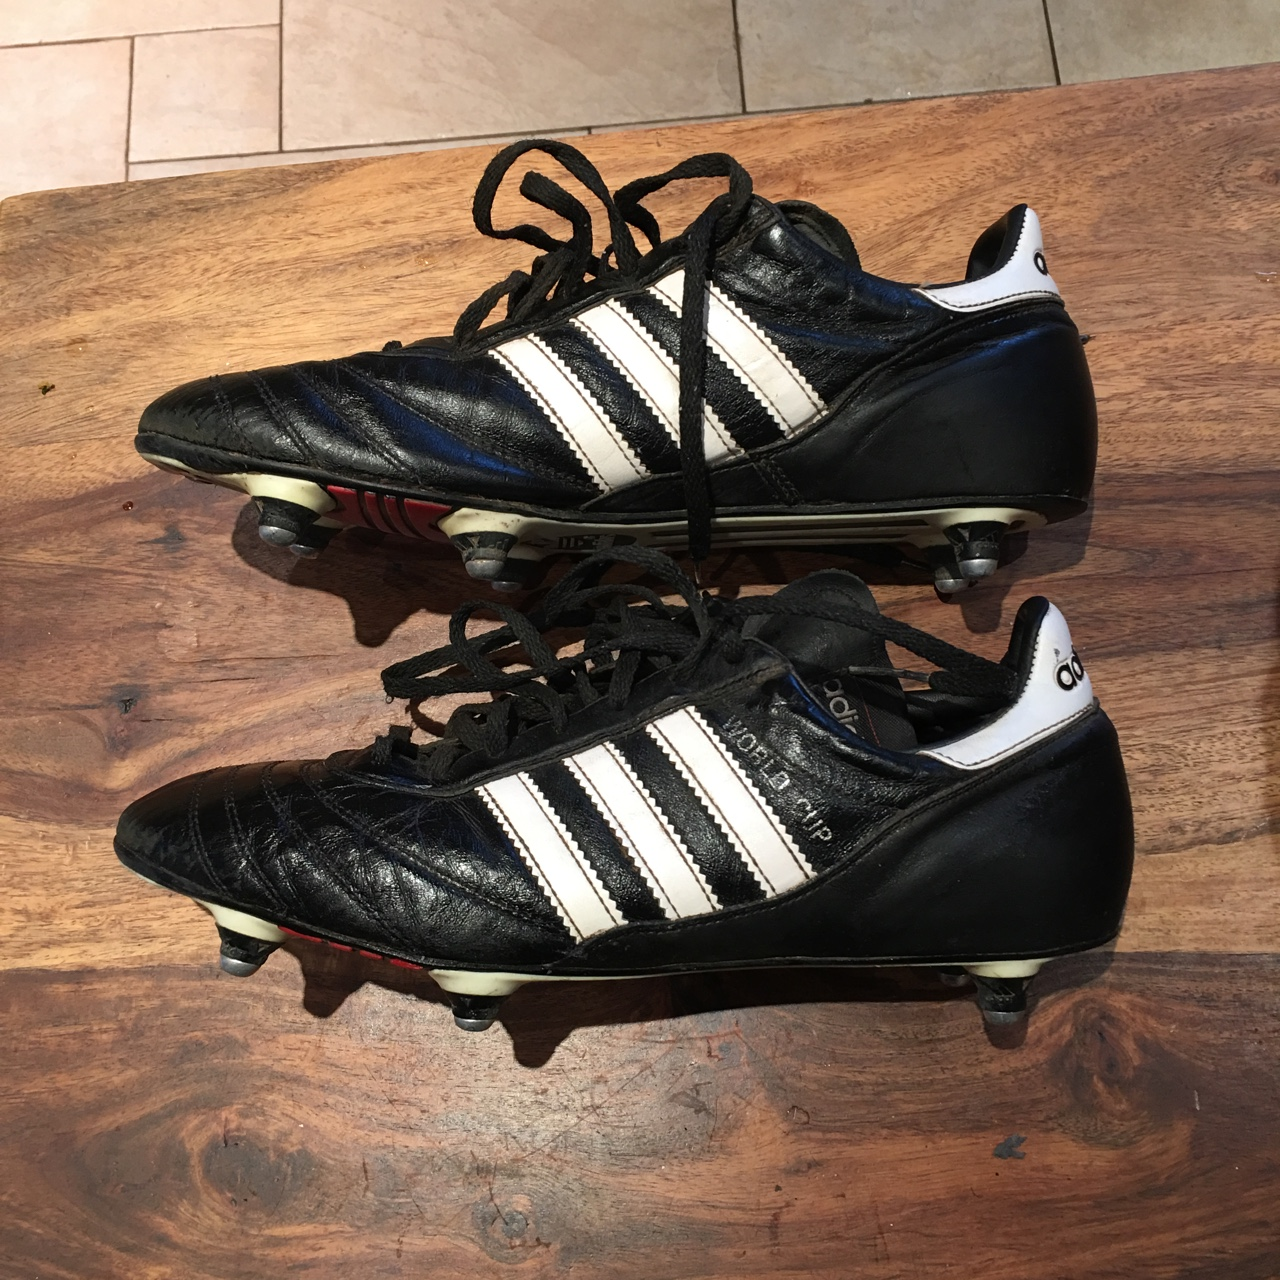 cups size 9.5uk Used football boots - Depop